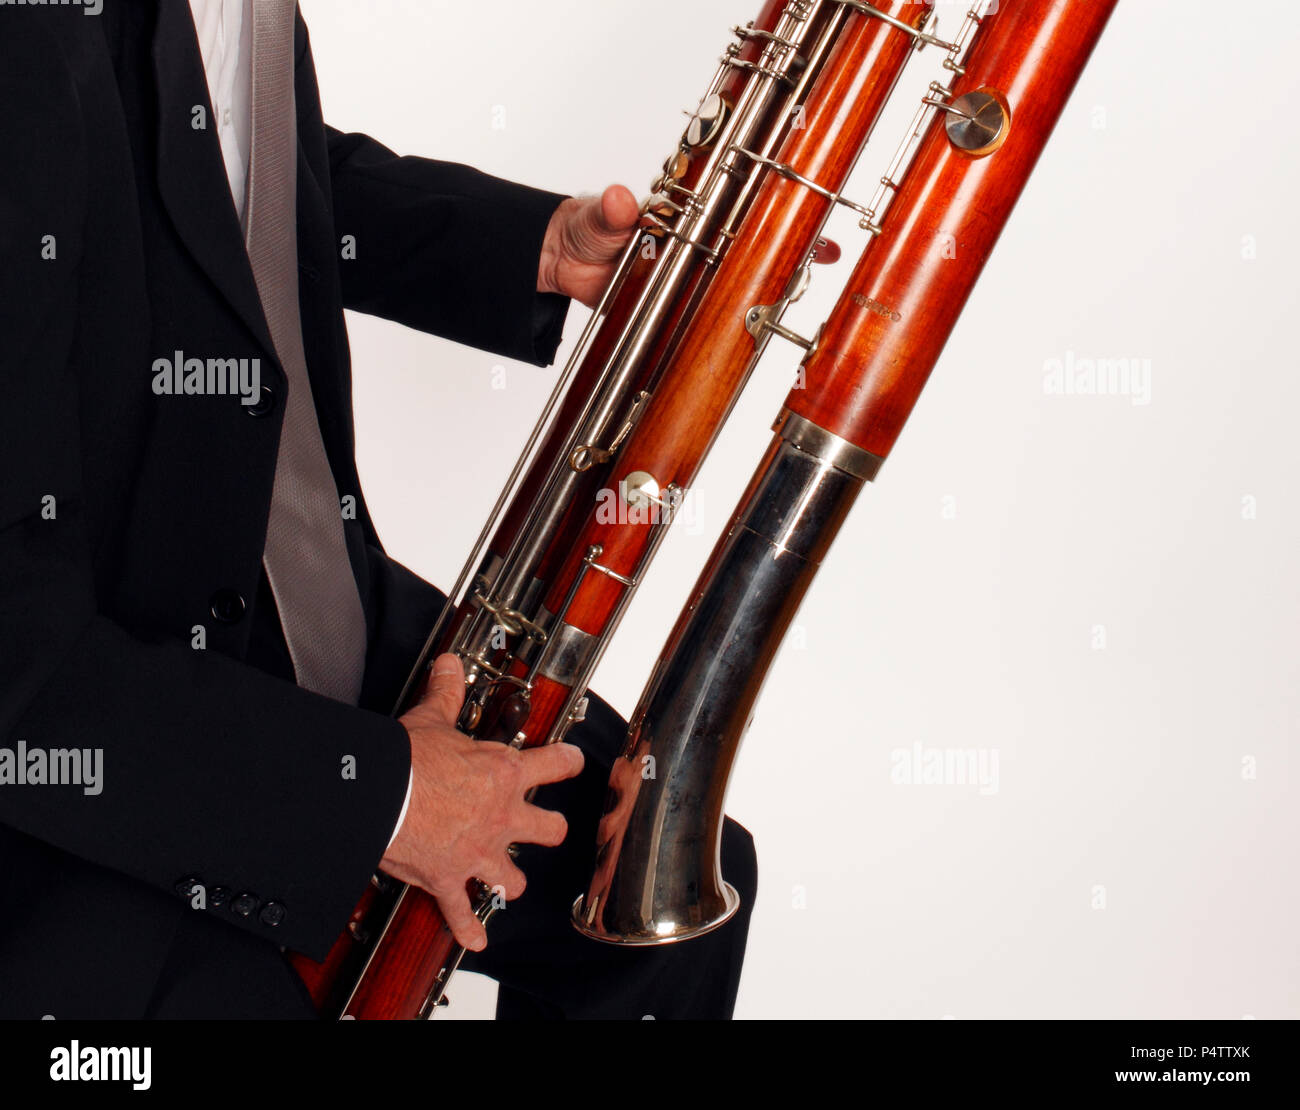 Generic - Contra Bassoon made by Heckel in playing position